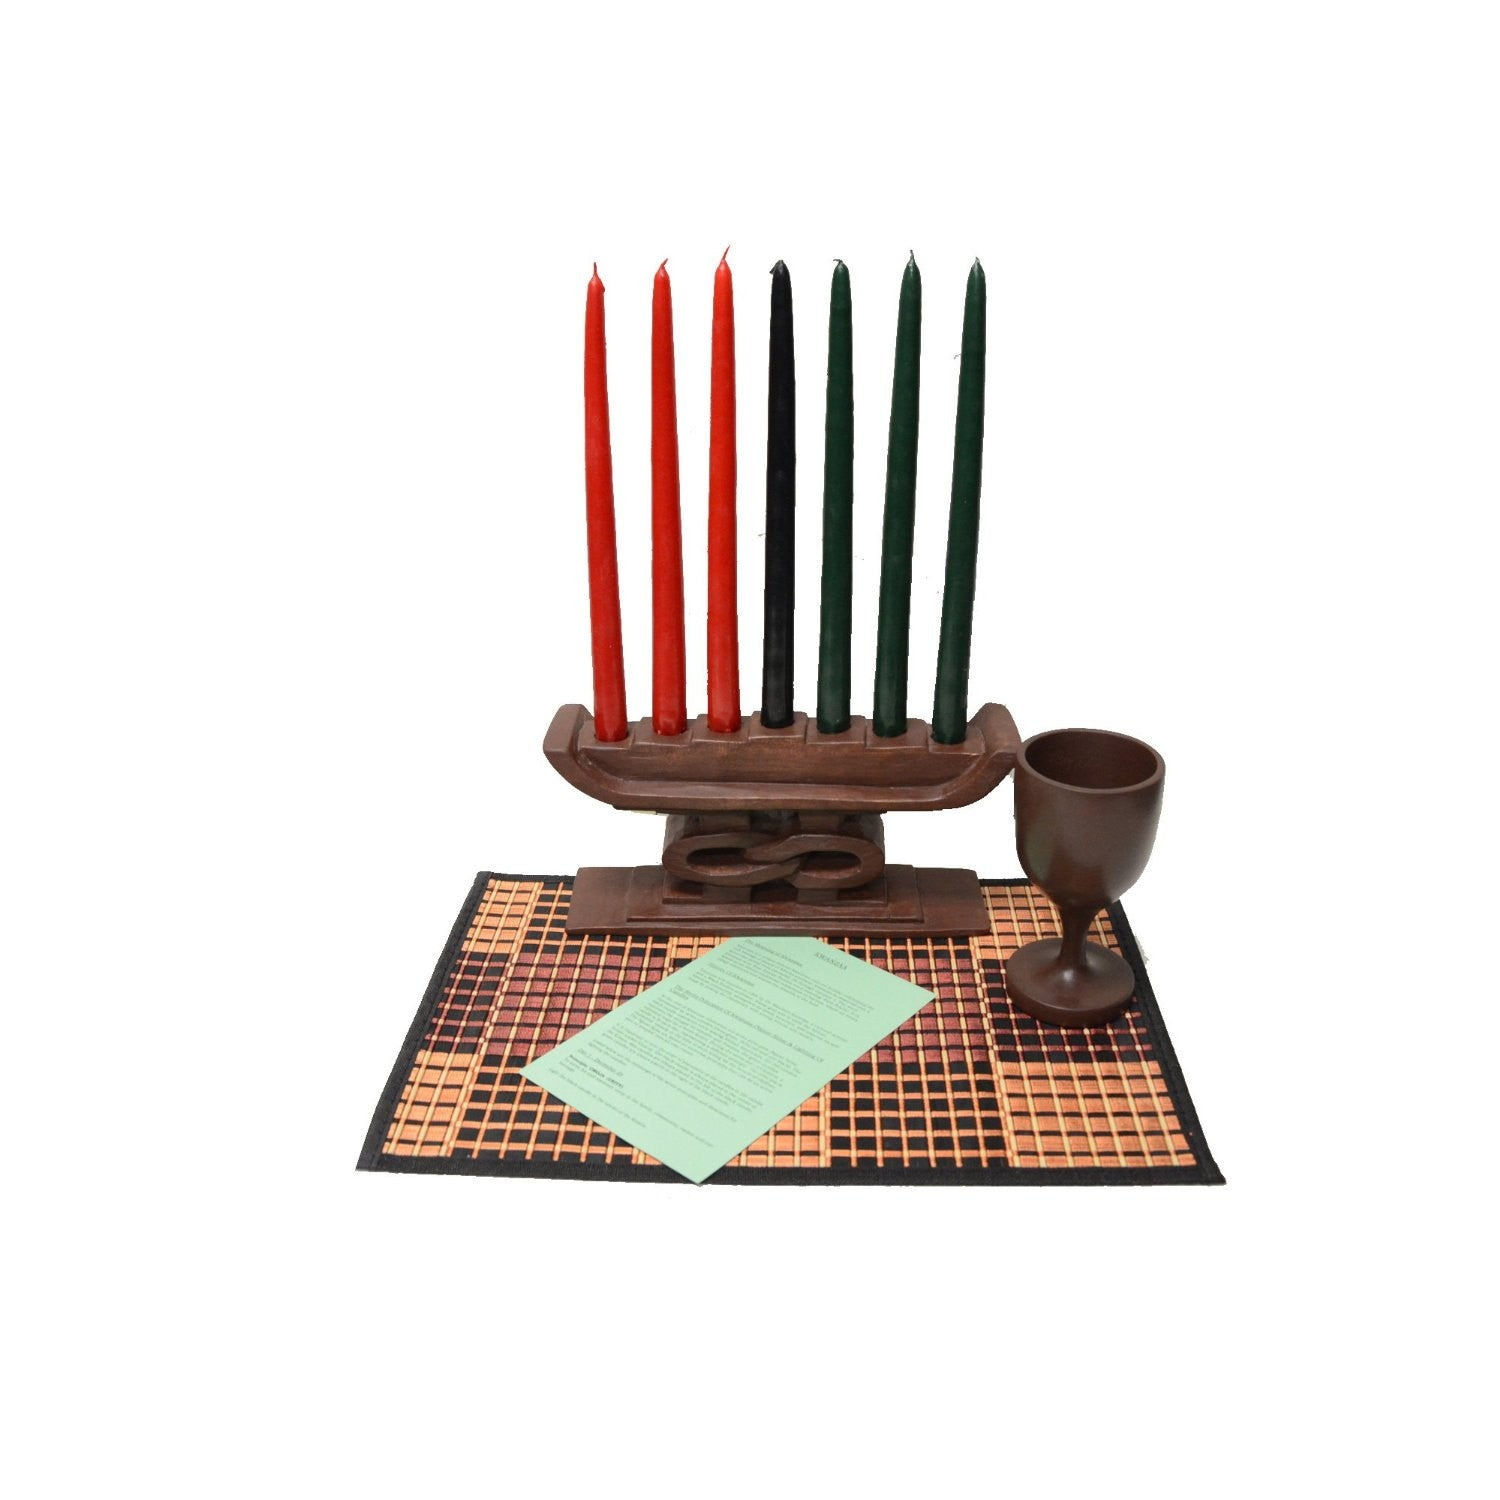 Kwanzaa Unity Celebration Set (Hand Made in Ghana)